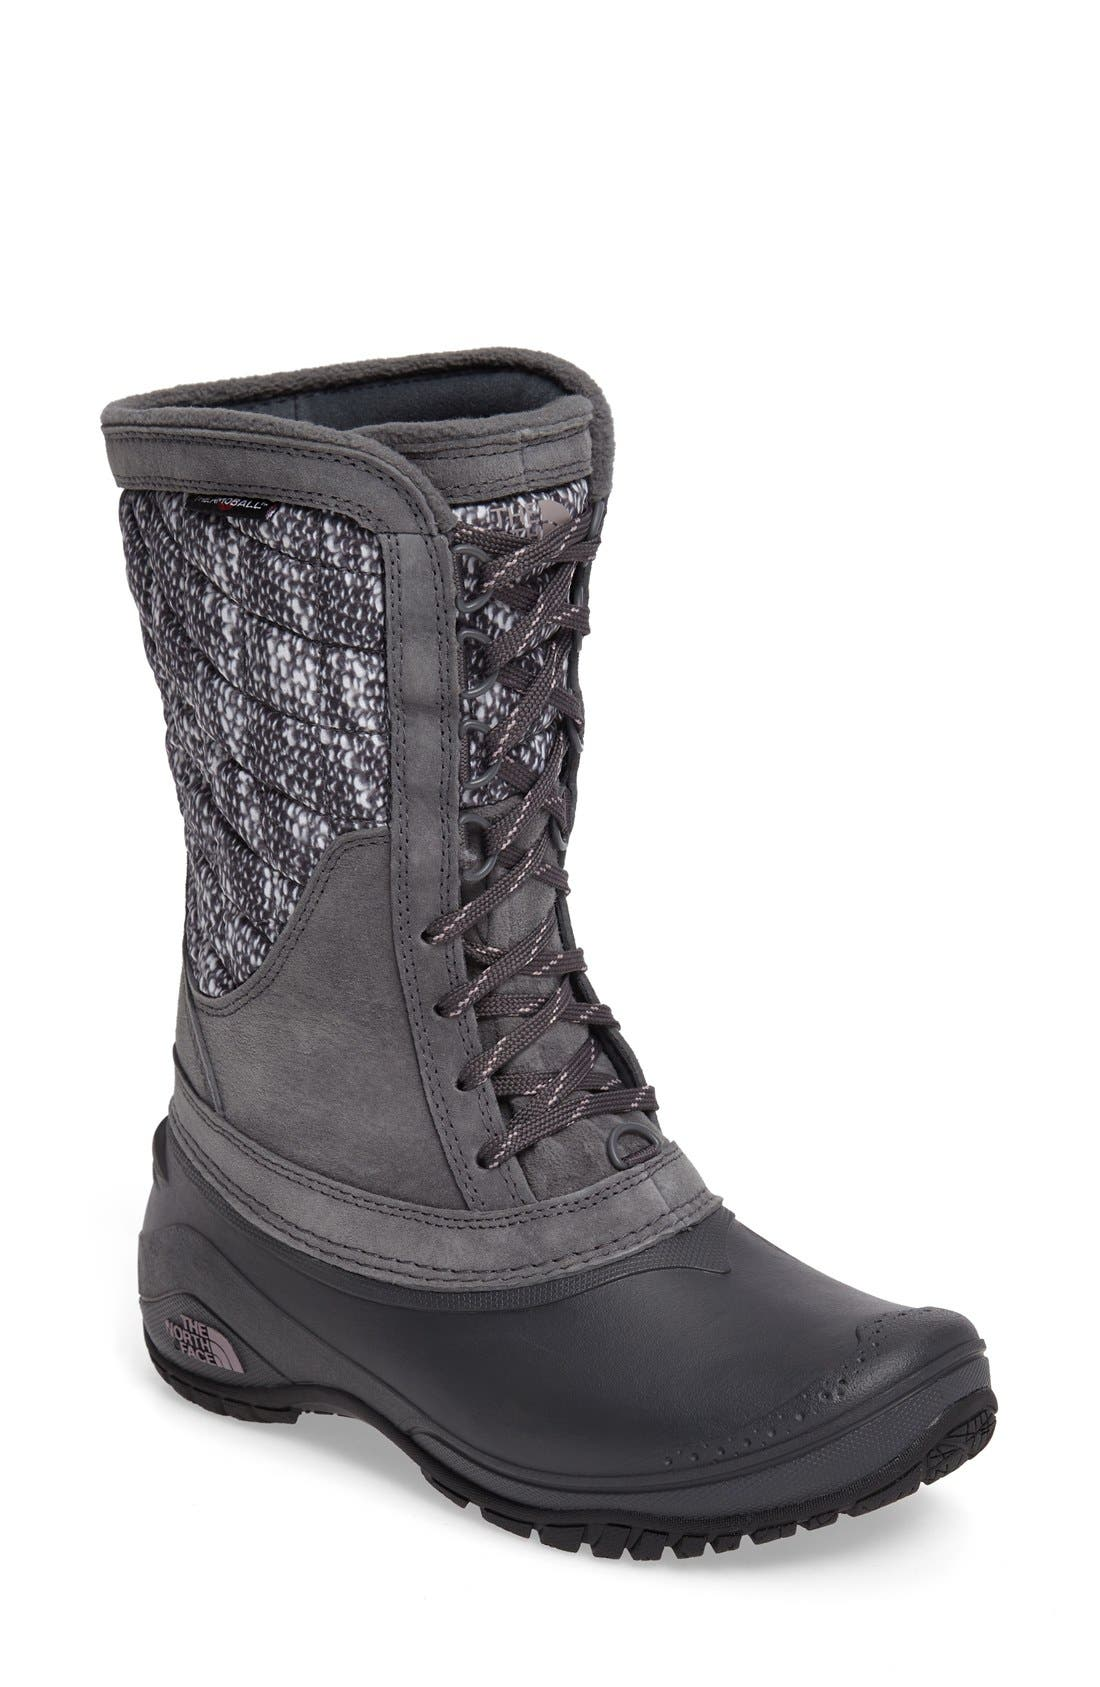 Alternate Image 1 Selected - The North Face ThermoBall™ Utility Waterproof Boot (Women)